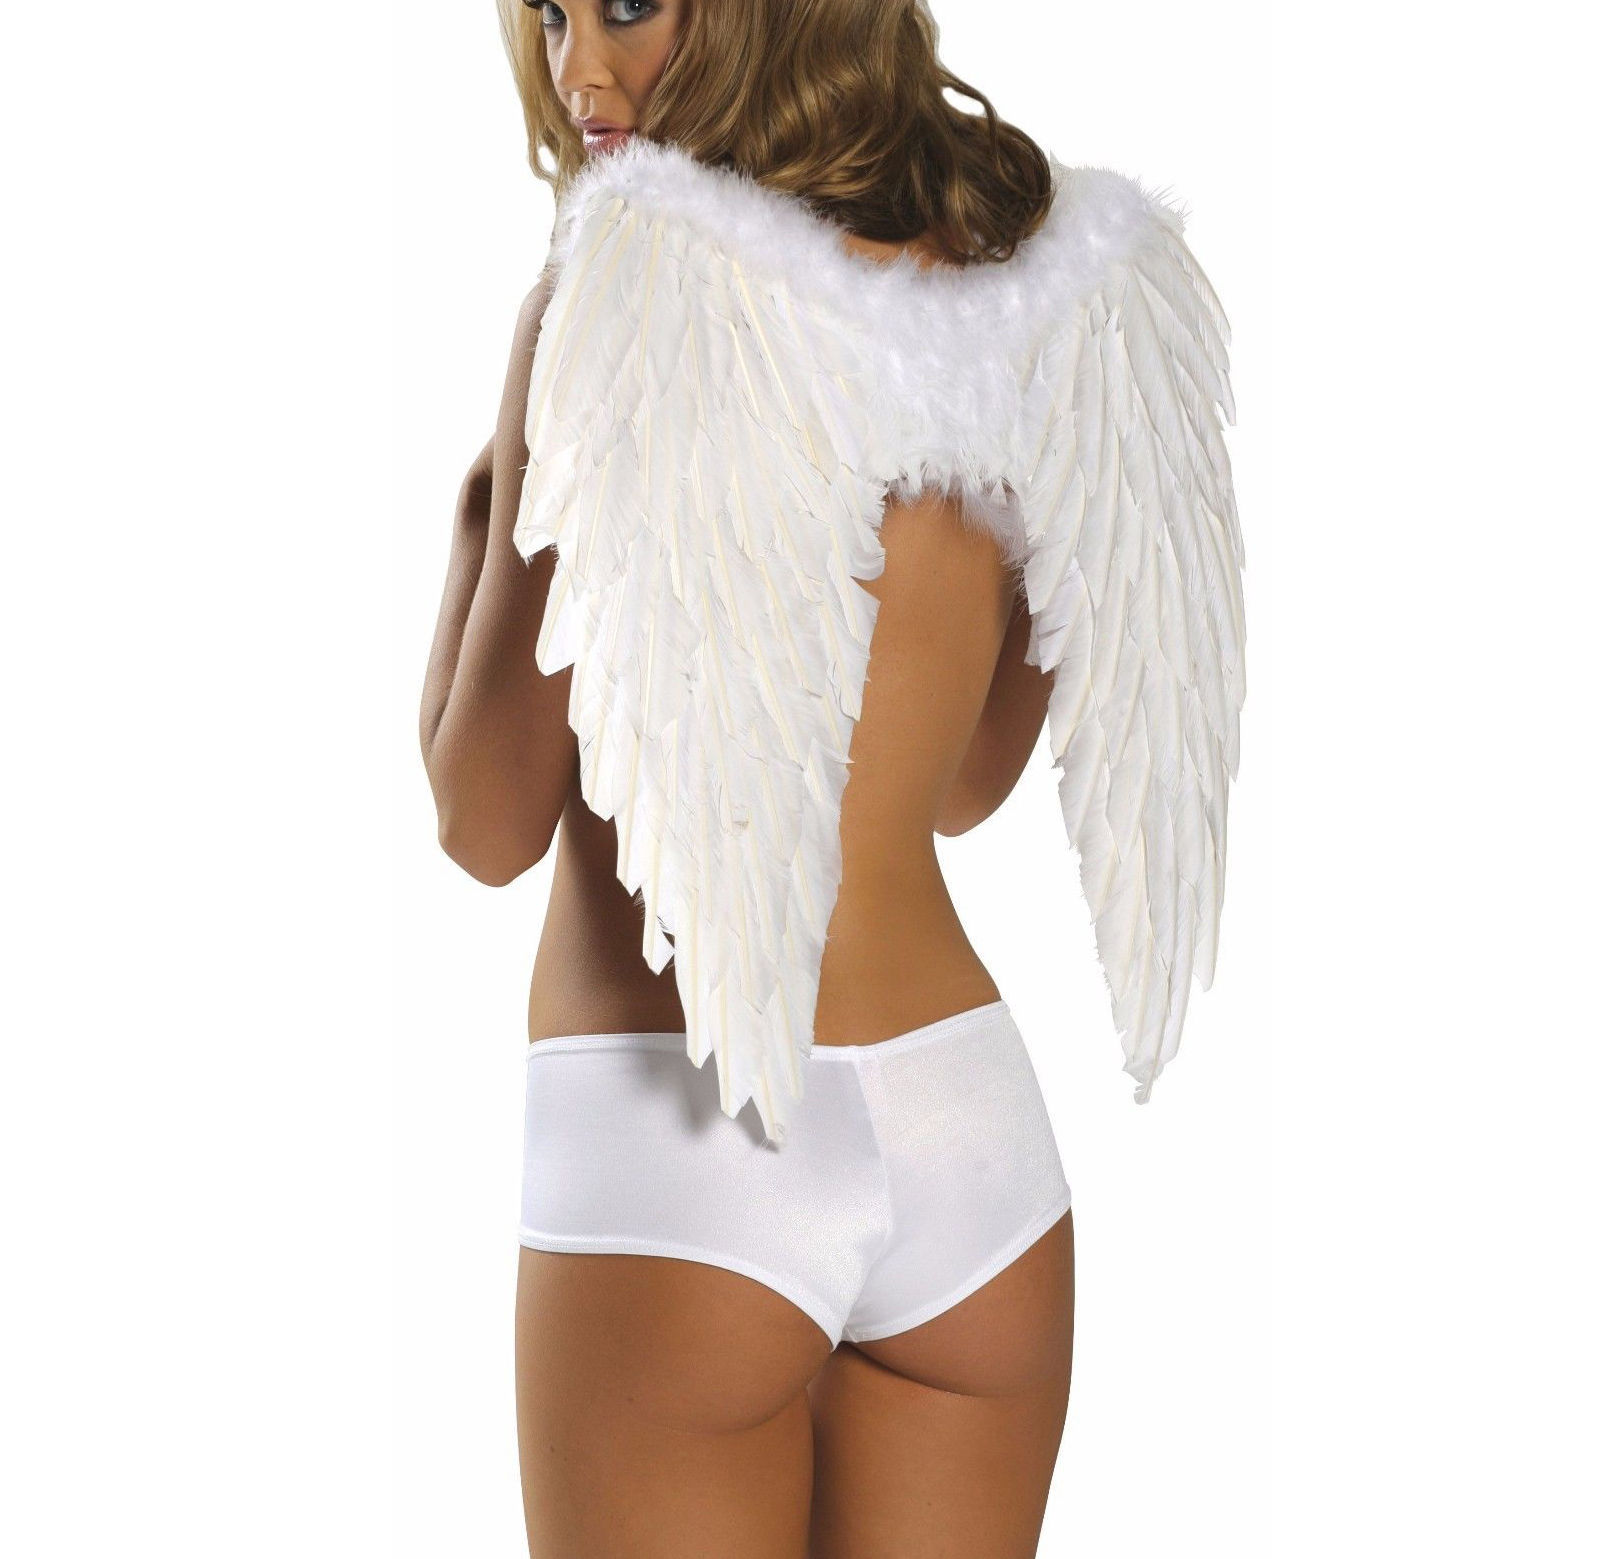 ANGEL FEATHER WINGS White Or Black Womens Girls Costume Cosplay 1361